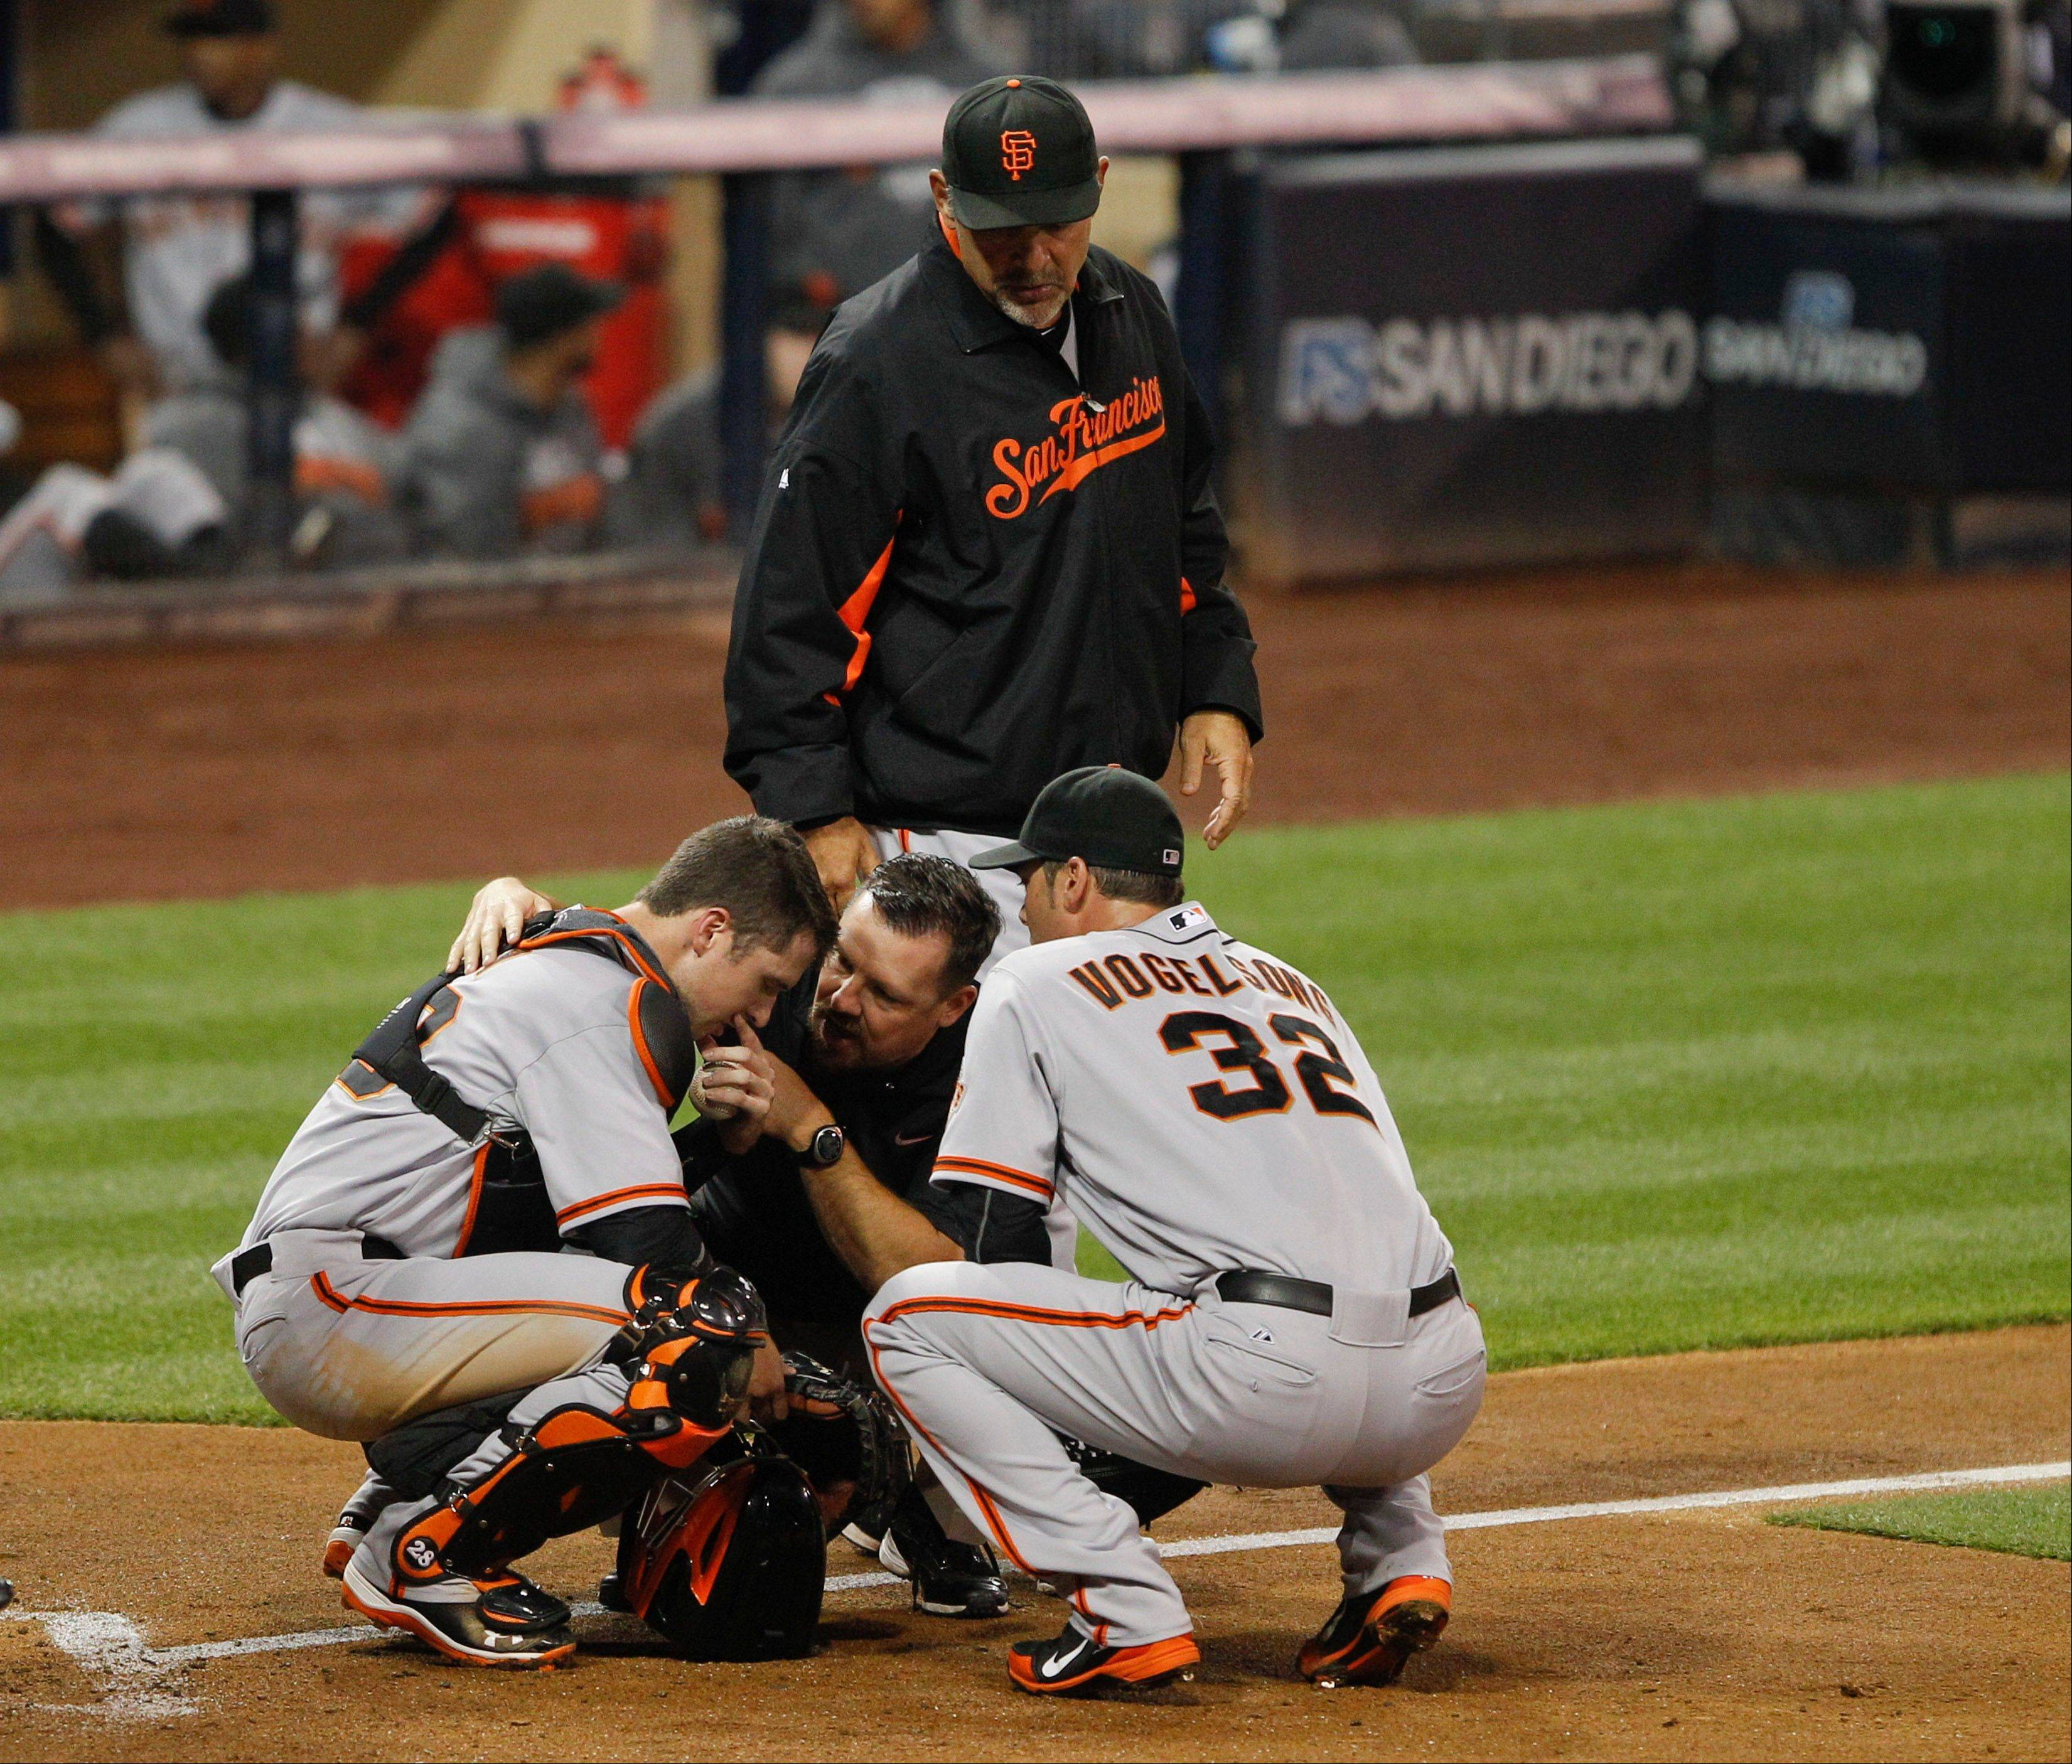 San Francisco Giants catcher Buster Posey is assisted by a trainer, pitcher Ryan Vogelsong and manager Bruce Bochy after being struck in the throat by a pitch during the second inning Friday in San Diego.